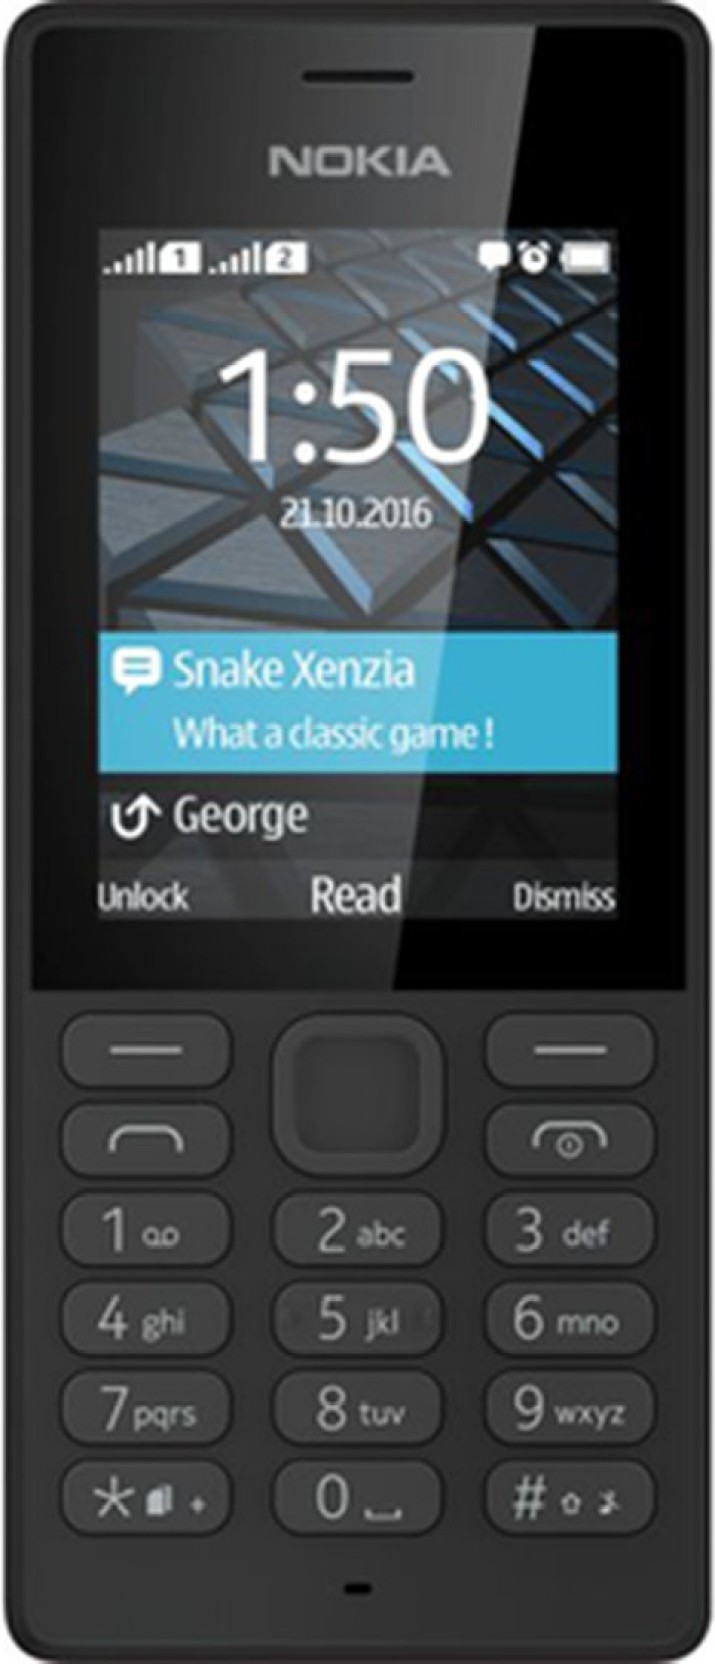 Nokia 150 Ds Online At Best Price Only On Torch Messenger Bag Odate Abu Add To Cart